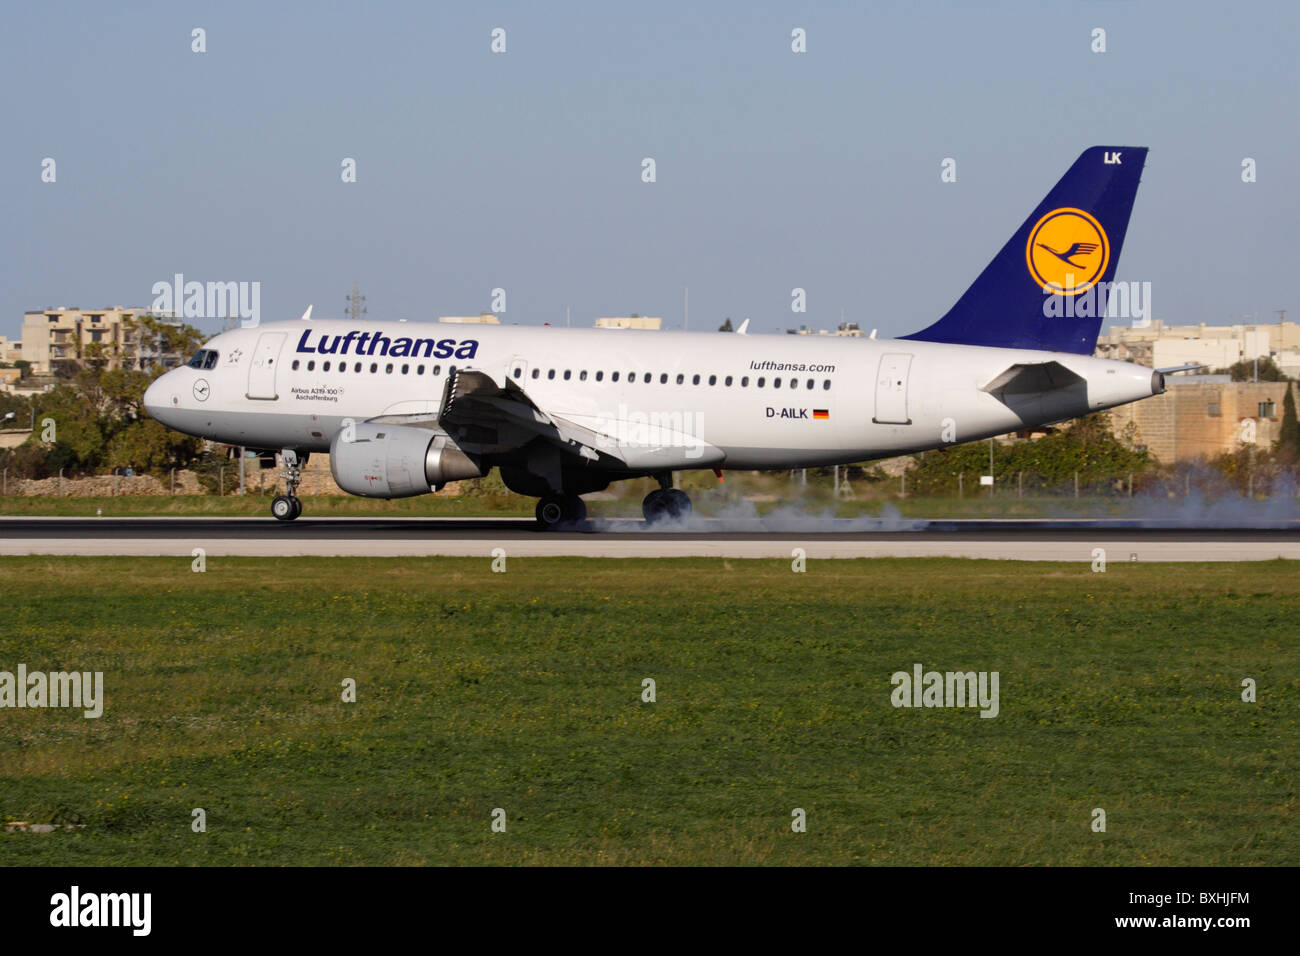 Lufthansa Airbus A319 airliner touching down on the runway while landing in Malta - Stock Image